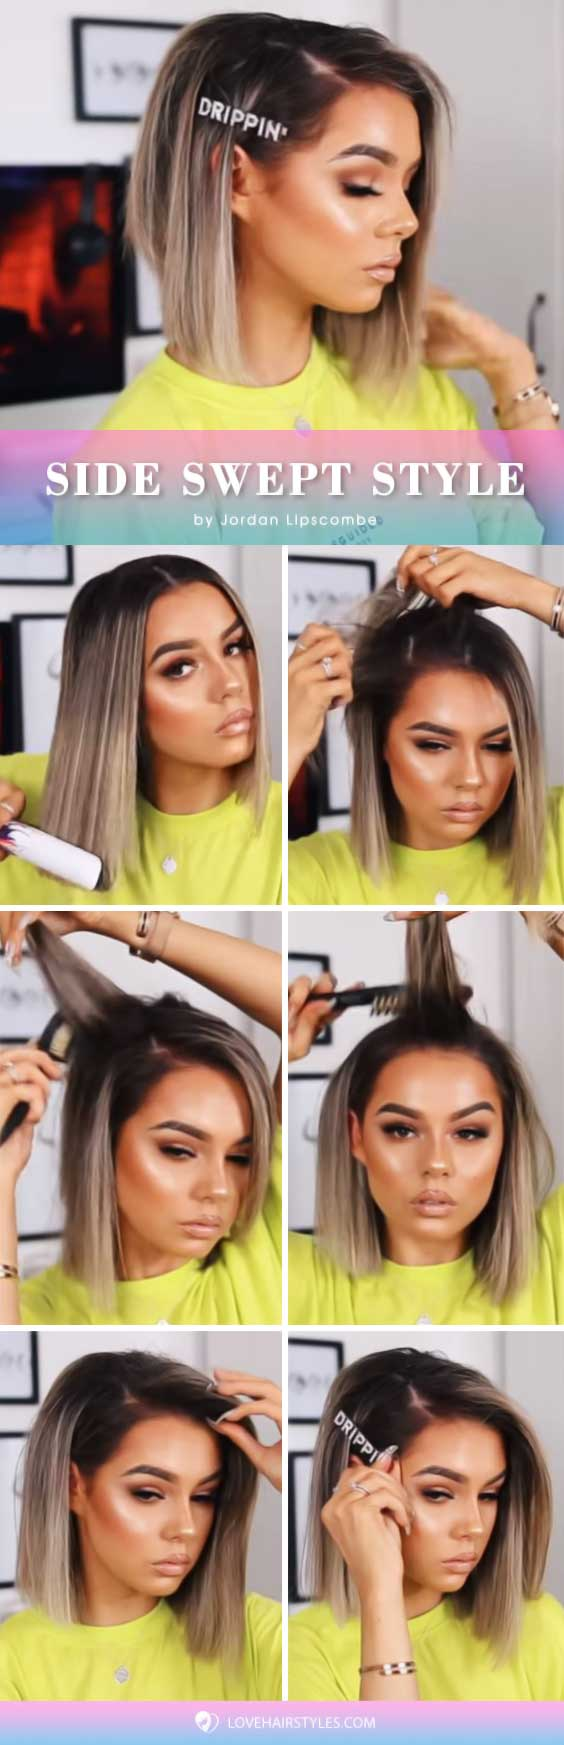 Side Swept Style #hairtutorial